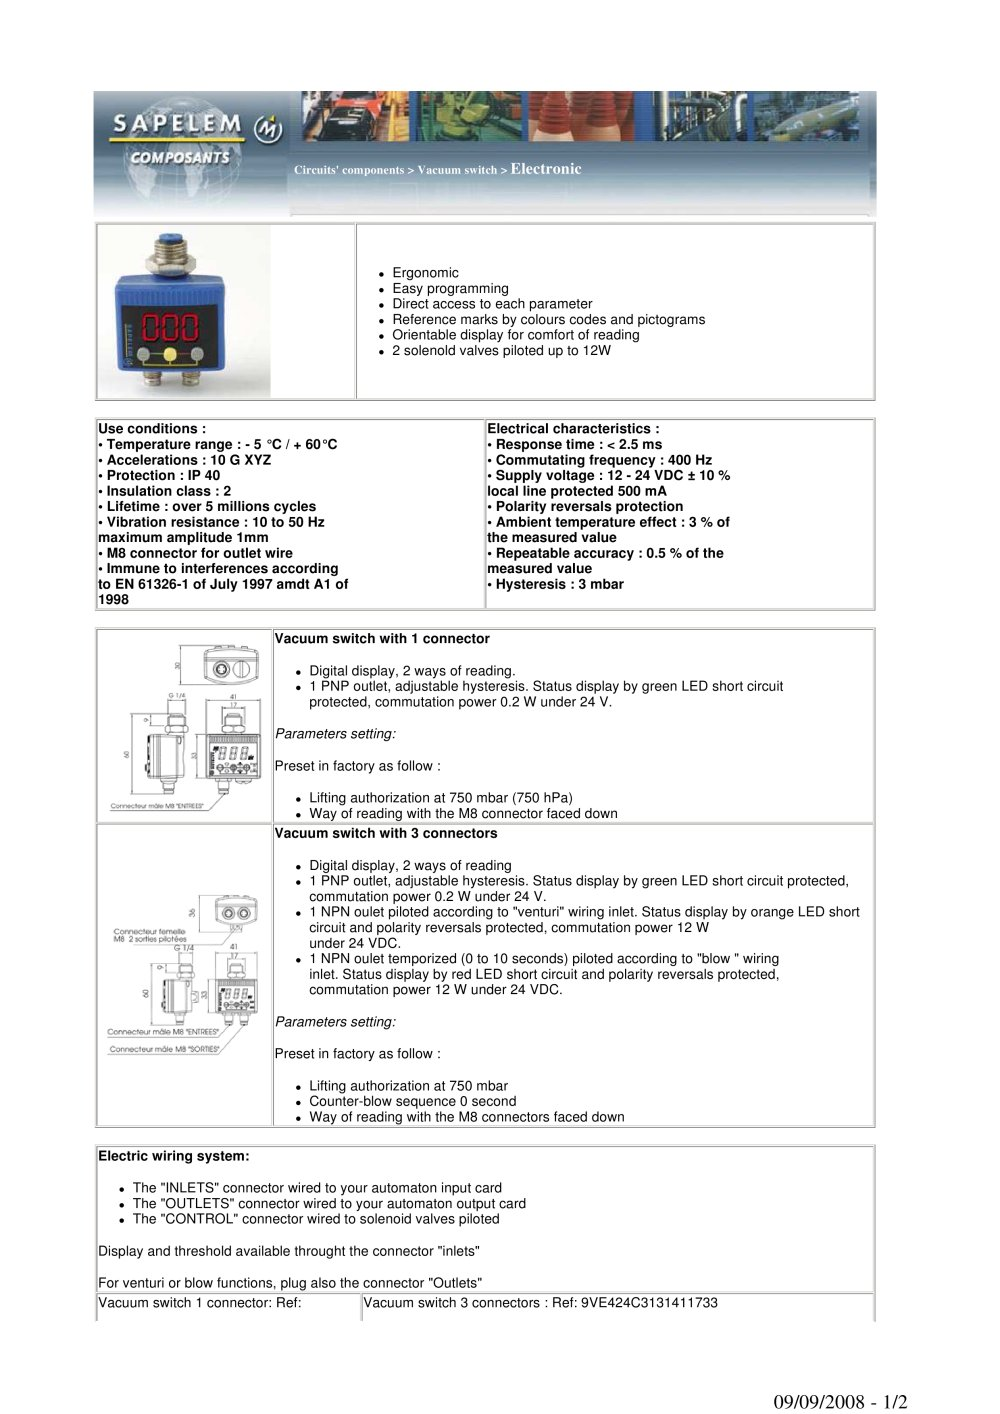 Vacuum Switch Sapelem Pdf Catalogue Technical Documentation 24 Volt Wiring Plug And Receptacle 1 2 Pages